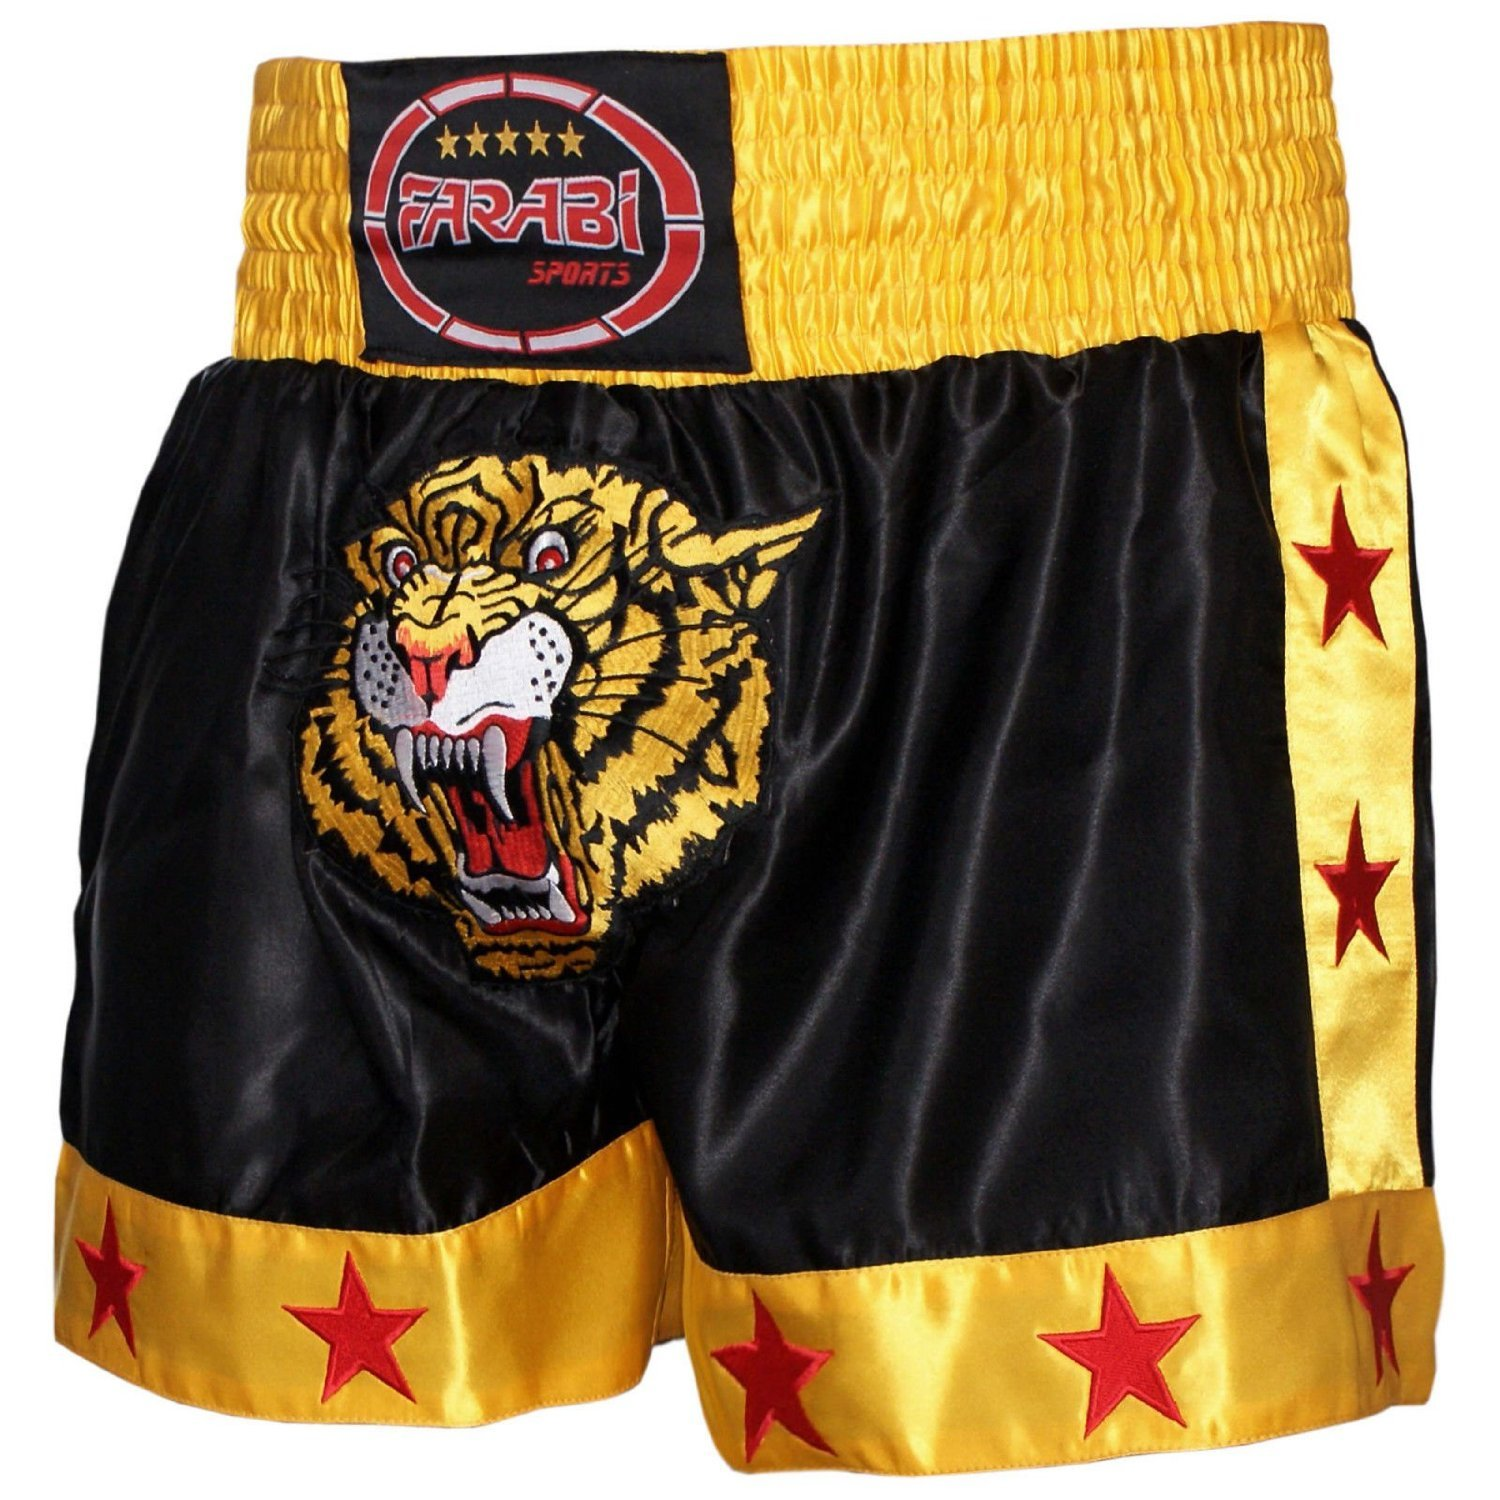 Muay Thai Shorts MMA Boxing Cage Fighting Kick Boxing Tiger Emorided Trunks Farabi Sports